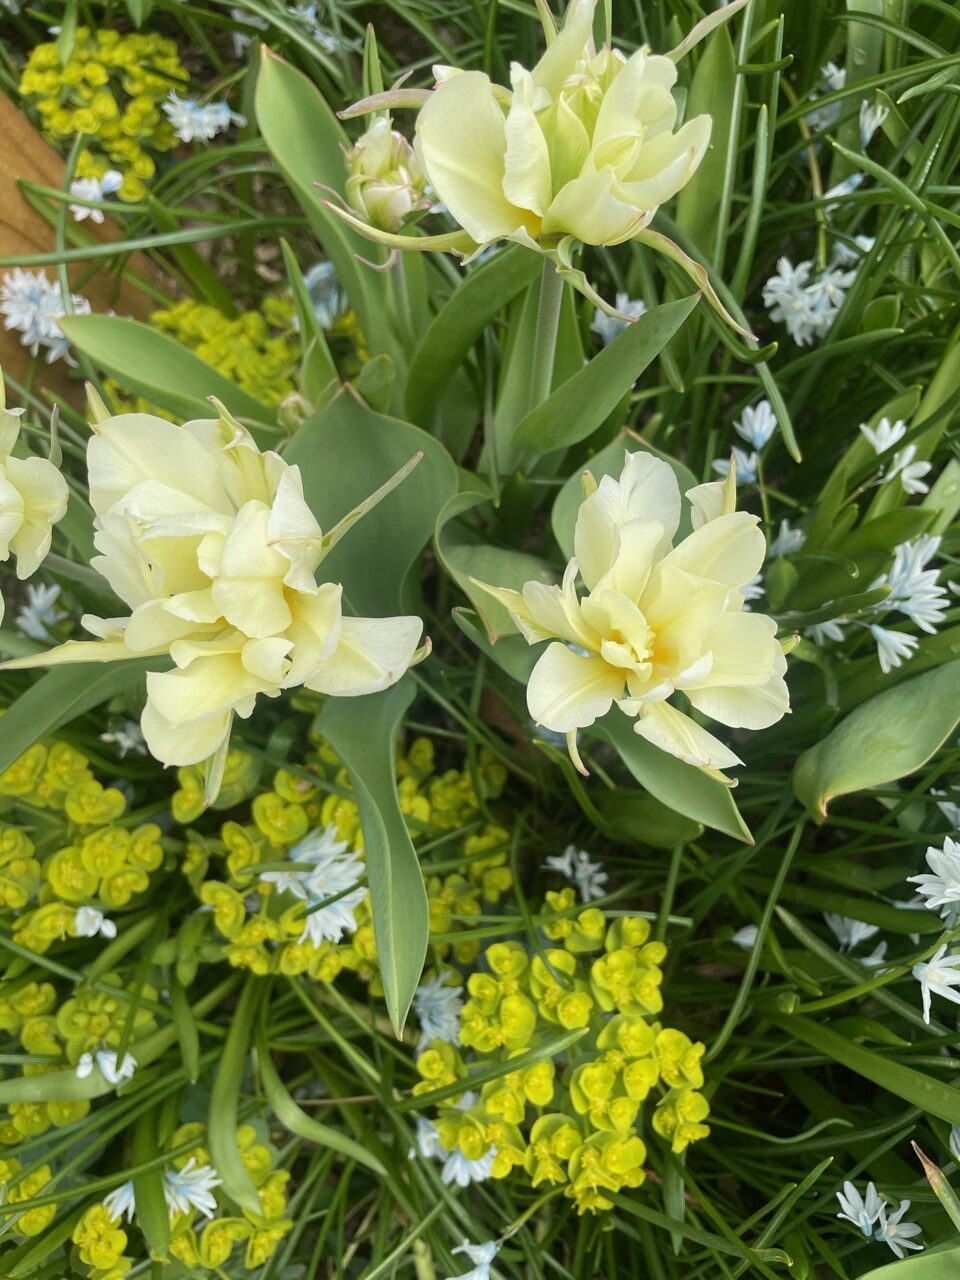 Pale green and white tulip